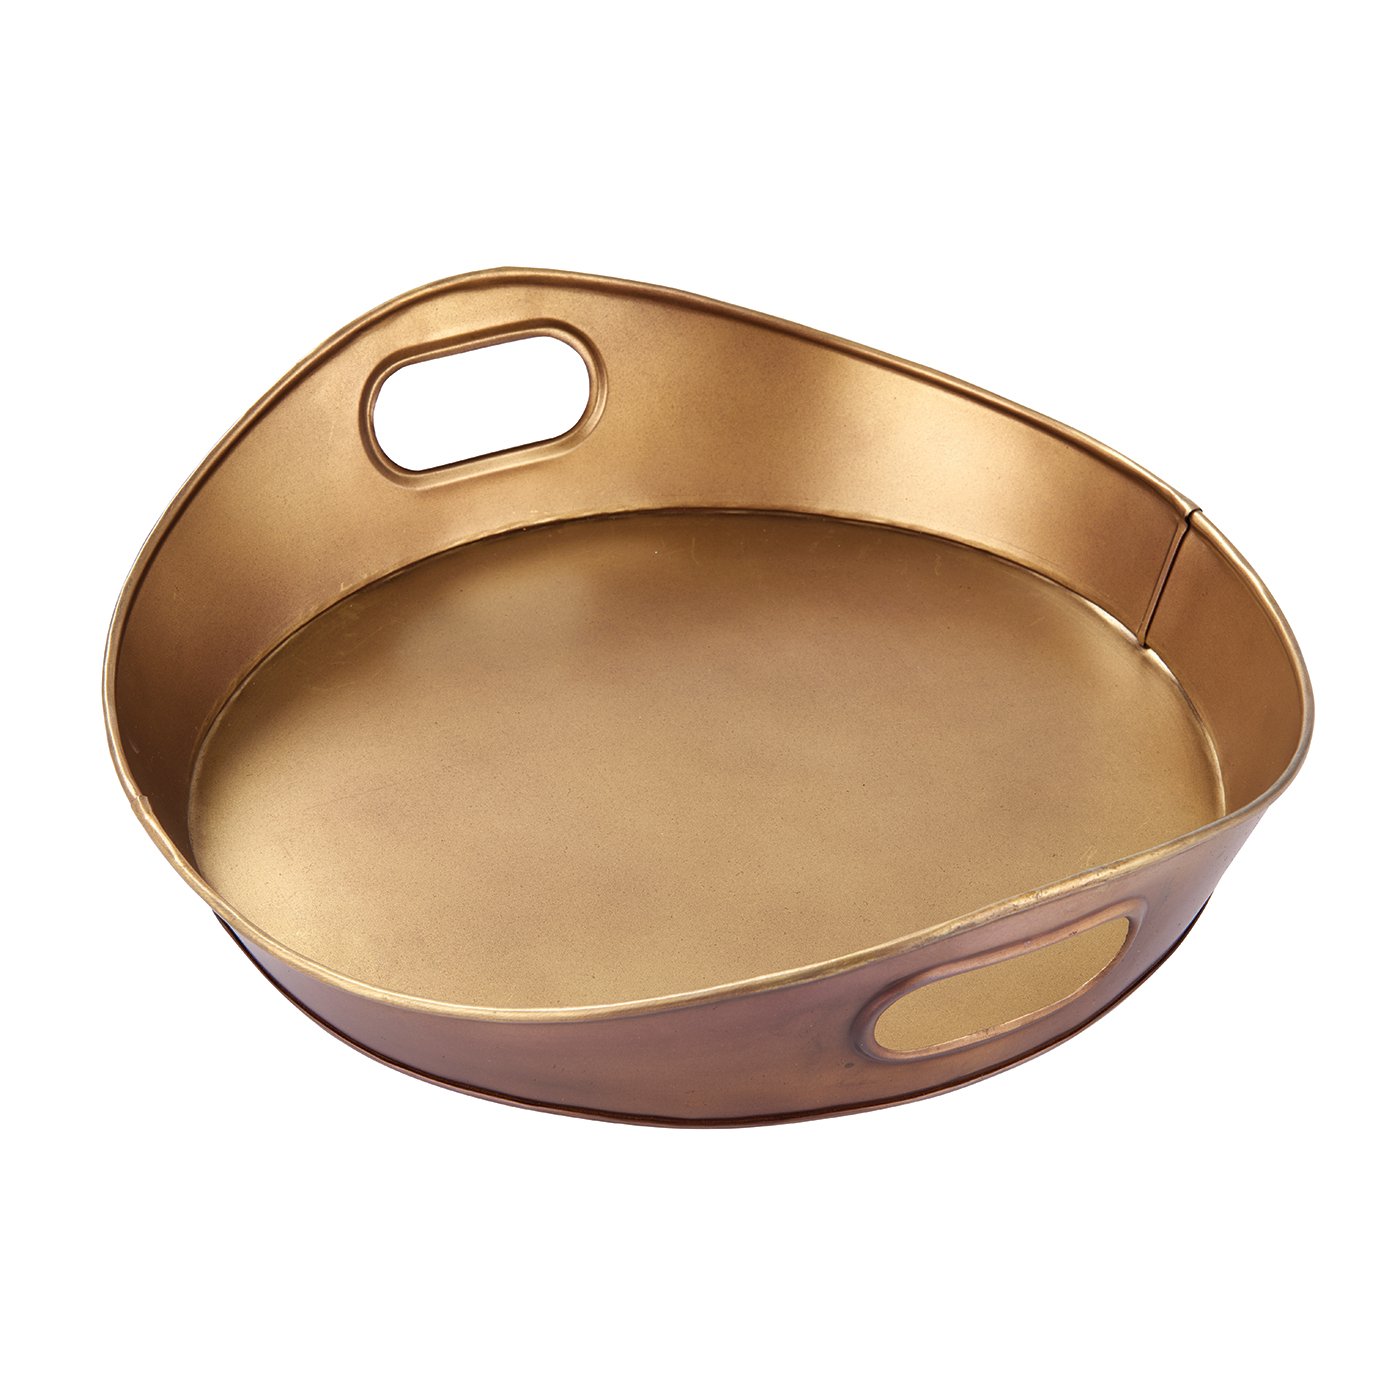 Endon Harding medium tray Aged brass effect plate H: 90mm W: 365mm L: 390mm Thumbnail 1